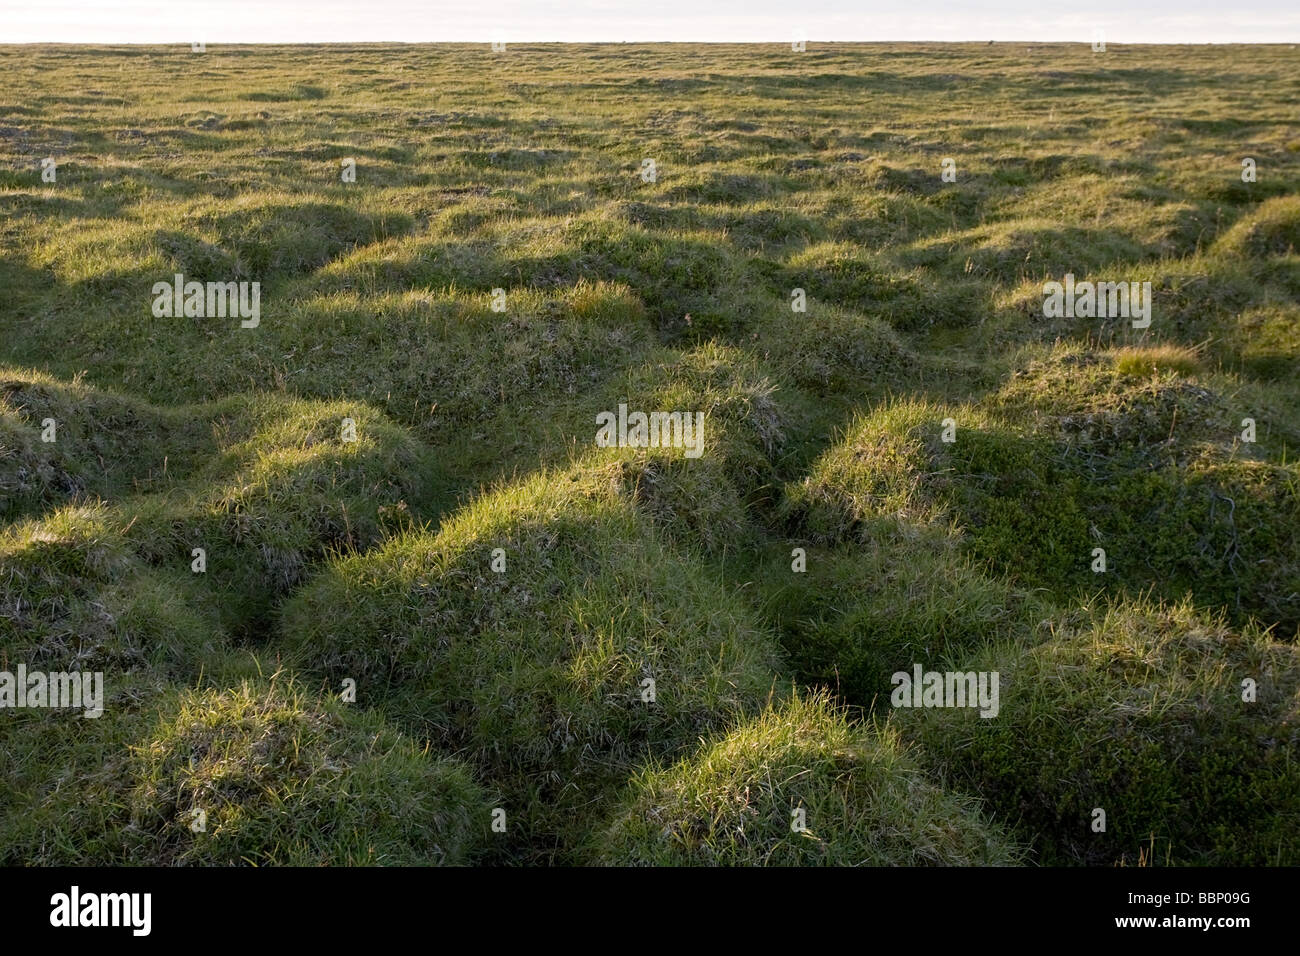 Landscape Hilly green grass with earth gleams - Stock Image